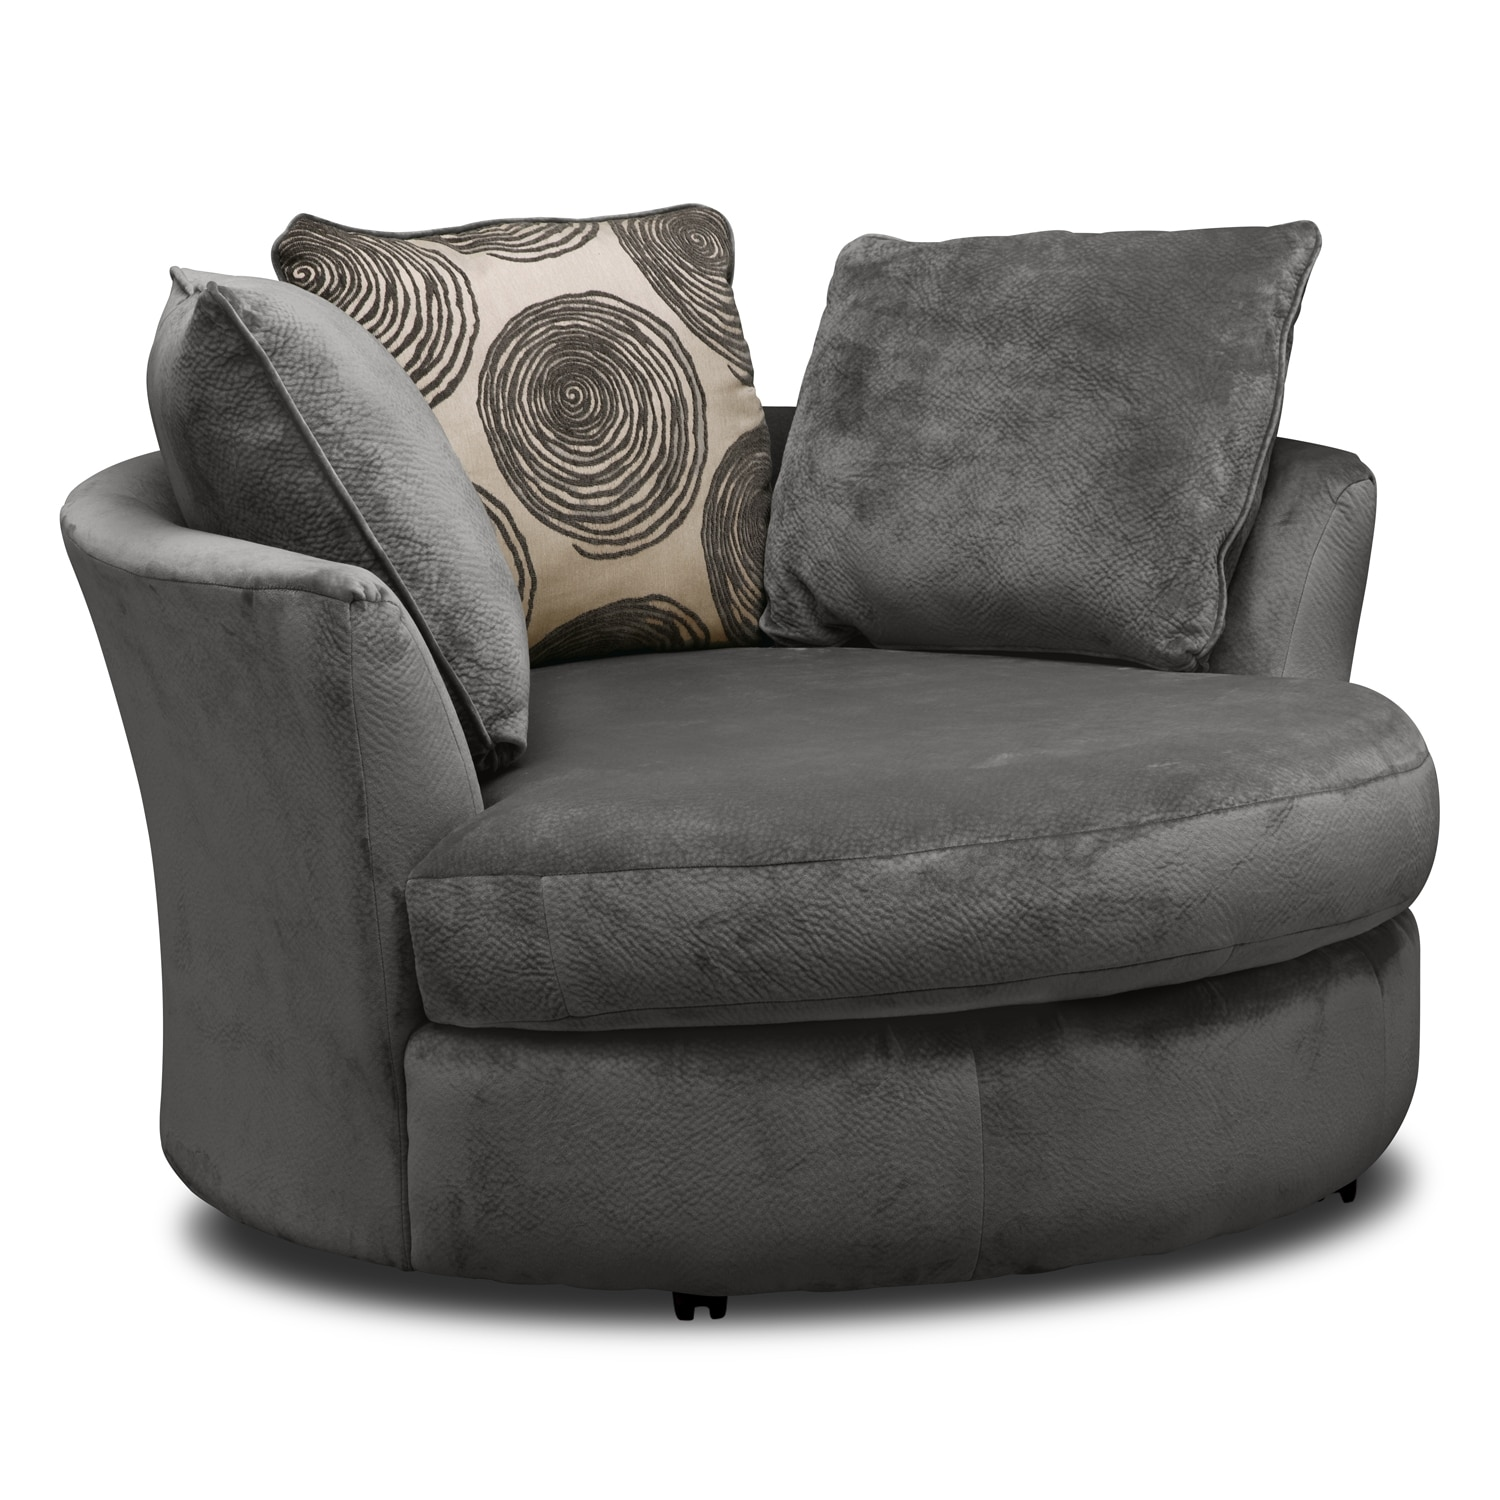 Cordelle Swivel Chair Gray